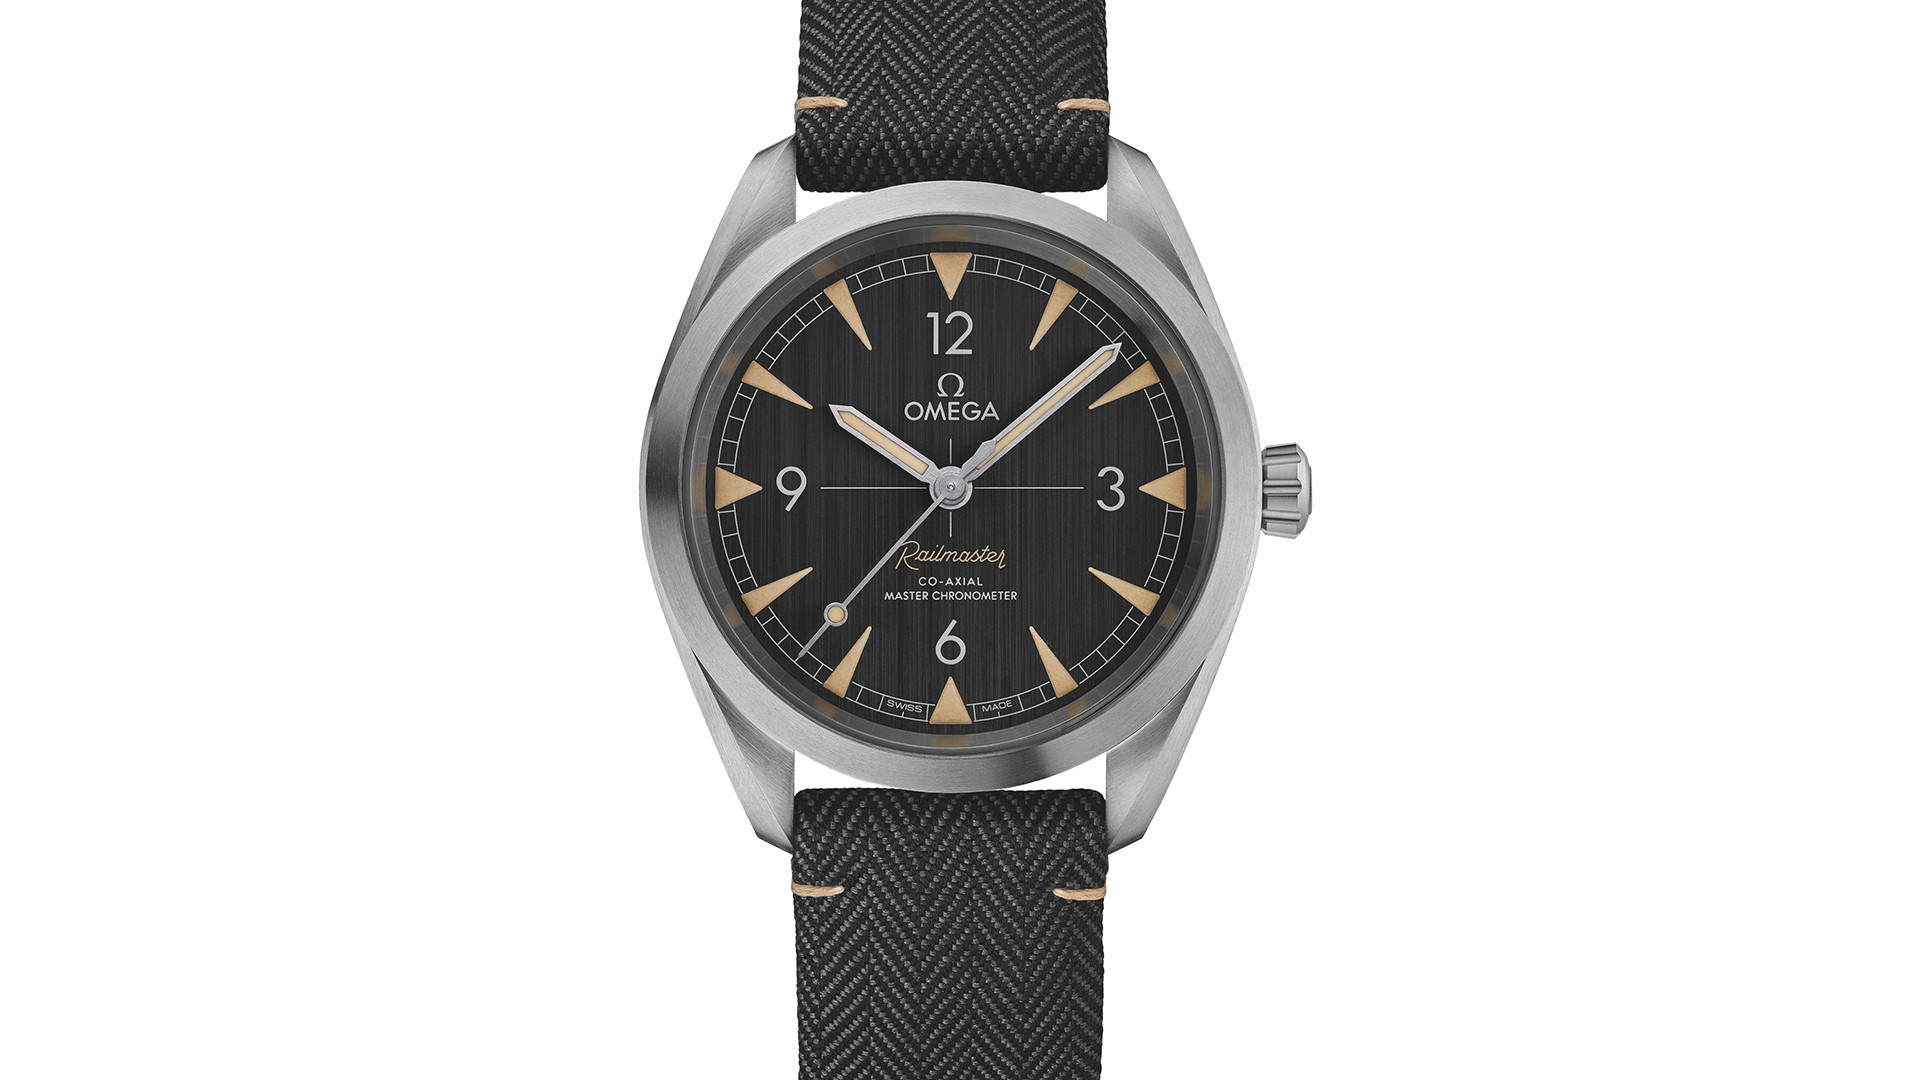 Omega Railmaster watch relaunch